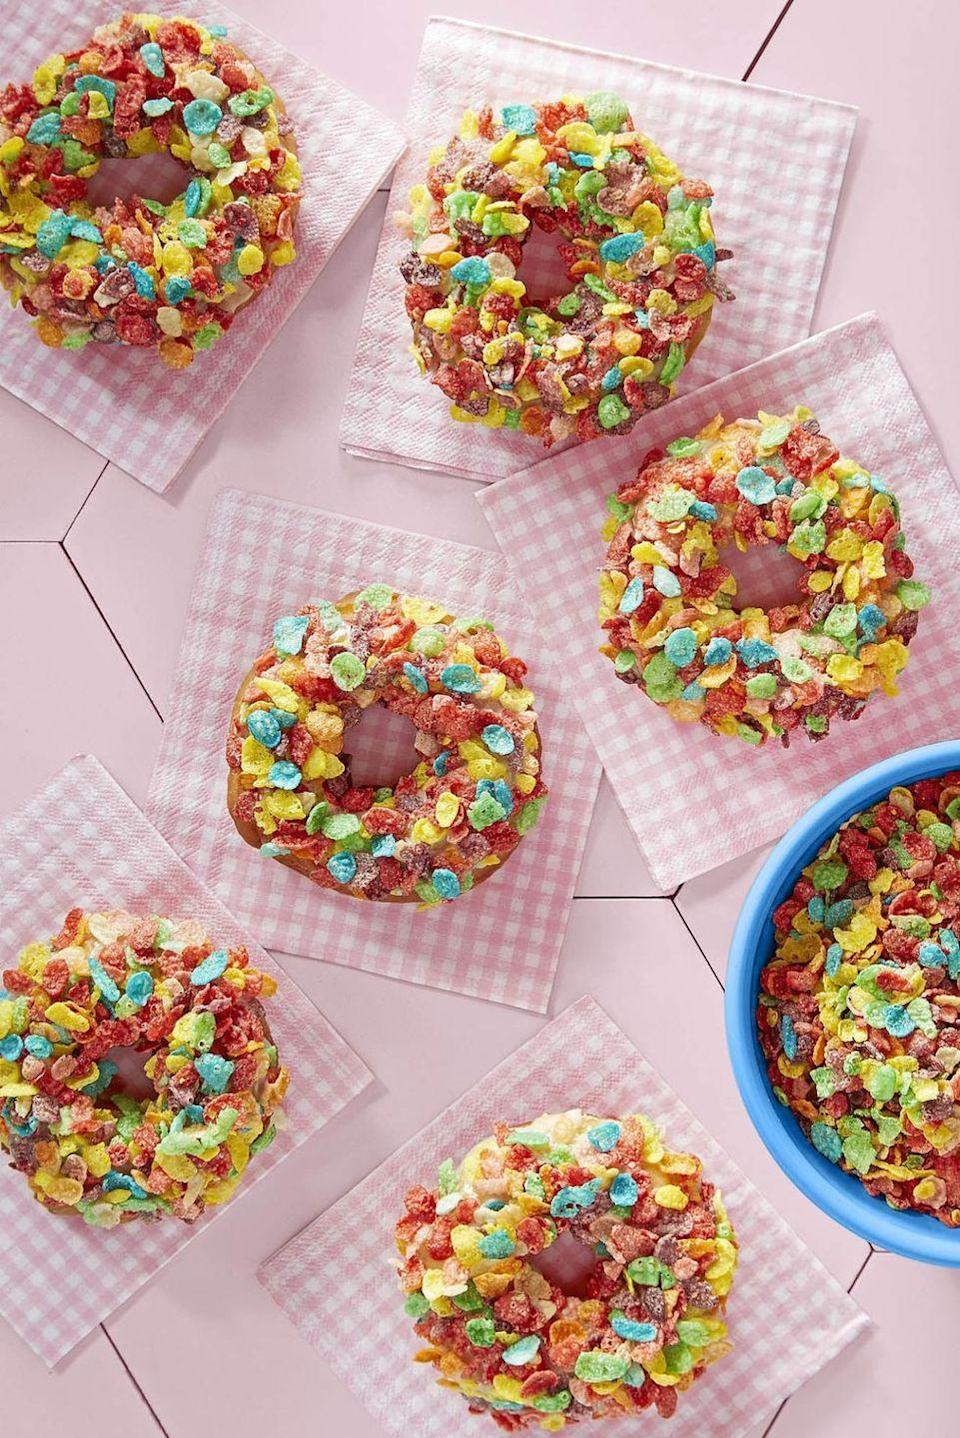 "<p>Two breakfast favorites collide to create our new favorite morning treat. Mom will feel like a kid at heart indulging in these delicious donuts.</p><p><strong><a href=""https://www.countryliving.com/food-drinks/recipes/a46352/fruity-pebbles-doughnuts-recipe/"" rel=""nofollow noopener"" target=""_blank"" data-ylk=""slk:Get the recipe"" class=""link rapid-noclick-resp"">Get the recipe</a>.</strong></p><p><a class=""link rapid-noclick-resp"" href=""https://www.amazon.com/Lodge-Enameled-Classic-Enamel-Island/dp/B000N501BK?tag=syn-yahoo-20&ascsubtag=%5Bartid%7C10050.g.4238%5Bsrc%7Cyahoo-us"" rel=""nofollow noopener"" target=""_blank"" data-ylk=""slk:SHOP DUTCH OVENS"">SHOP DUTCH OVENS</a> </p>"